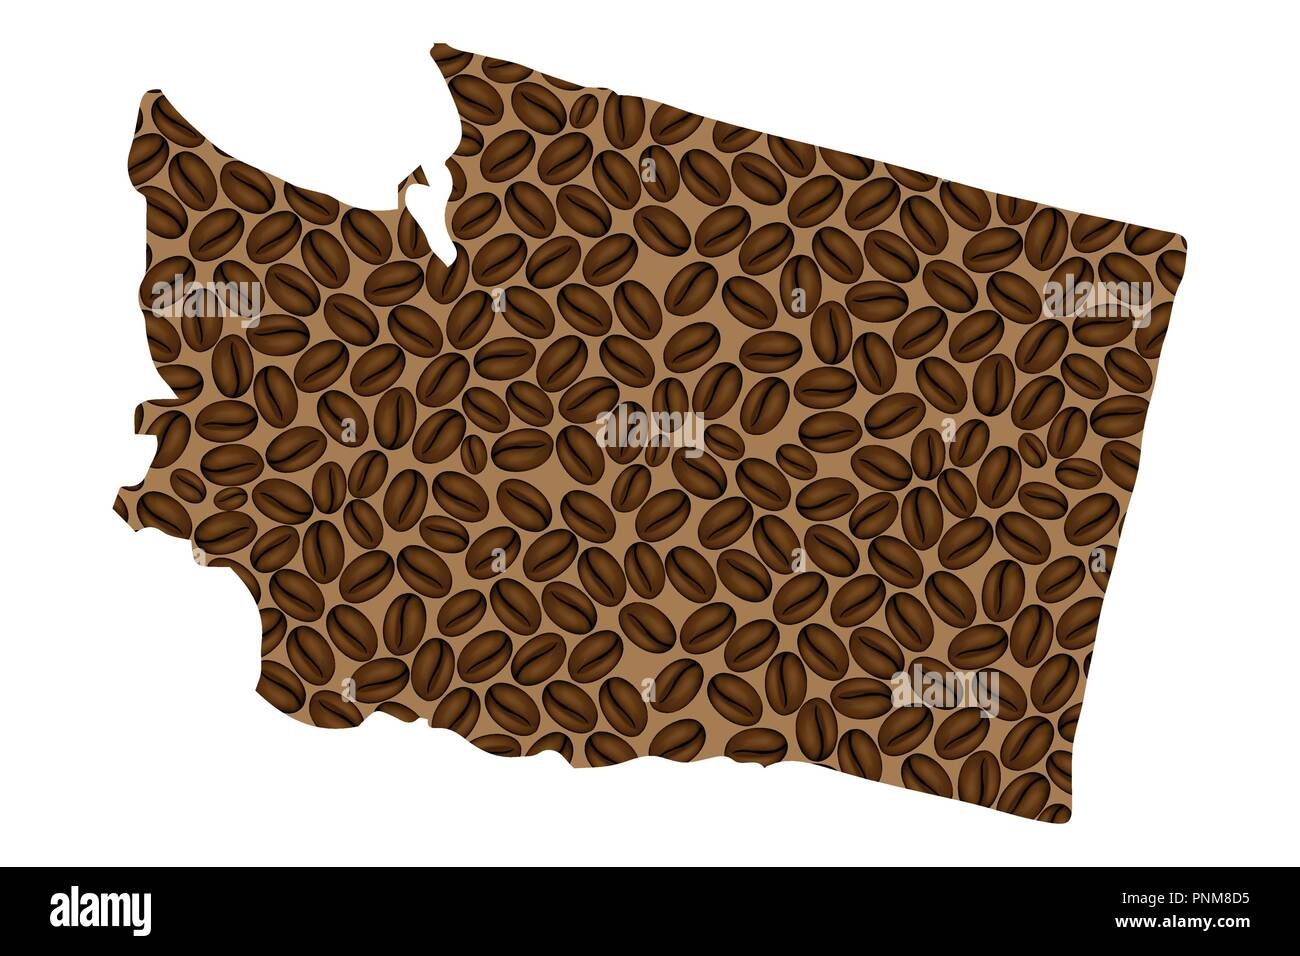 State of Washington (United States of America) -  map of coffee bean, Washington (state) map made of coffee beans, - Stock Vector